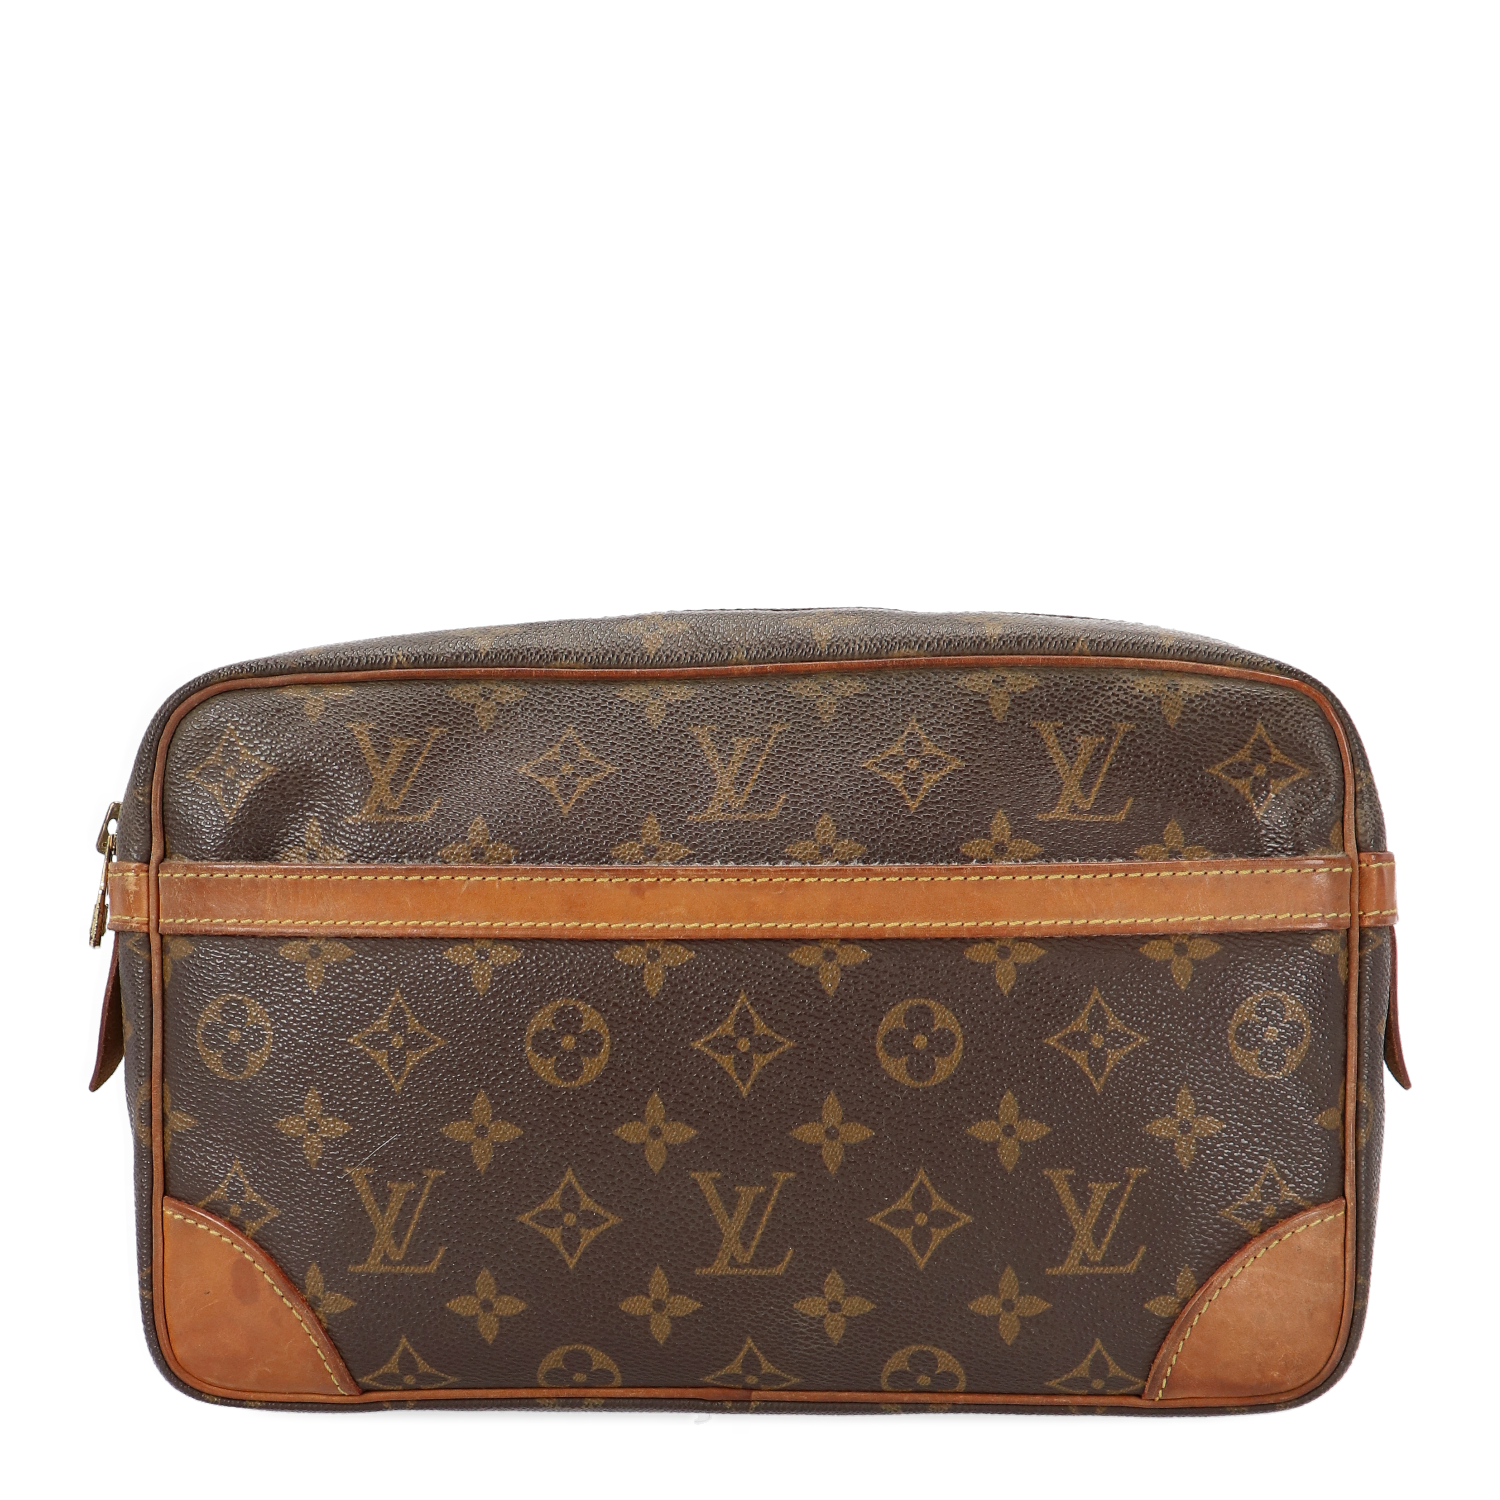 Louis Vuitton Monogram Canvas Compiegne 28